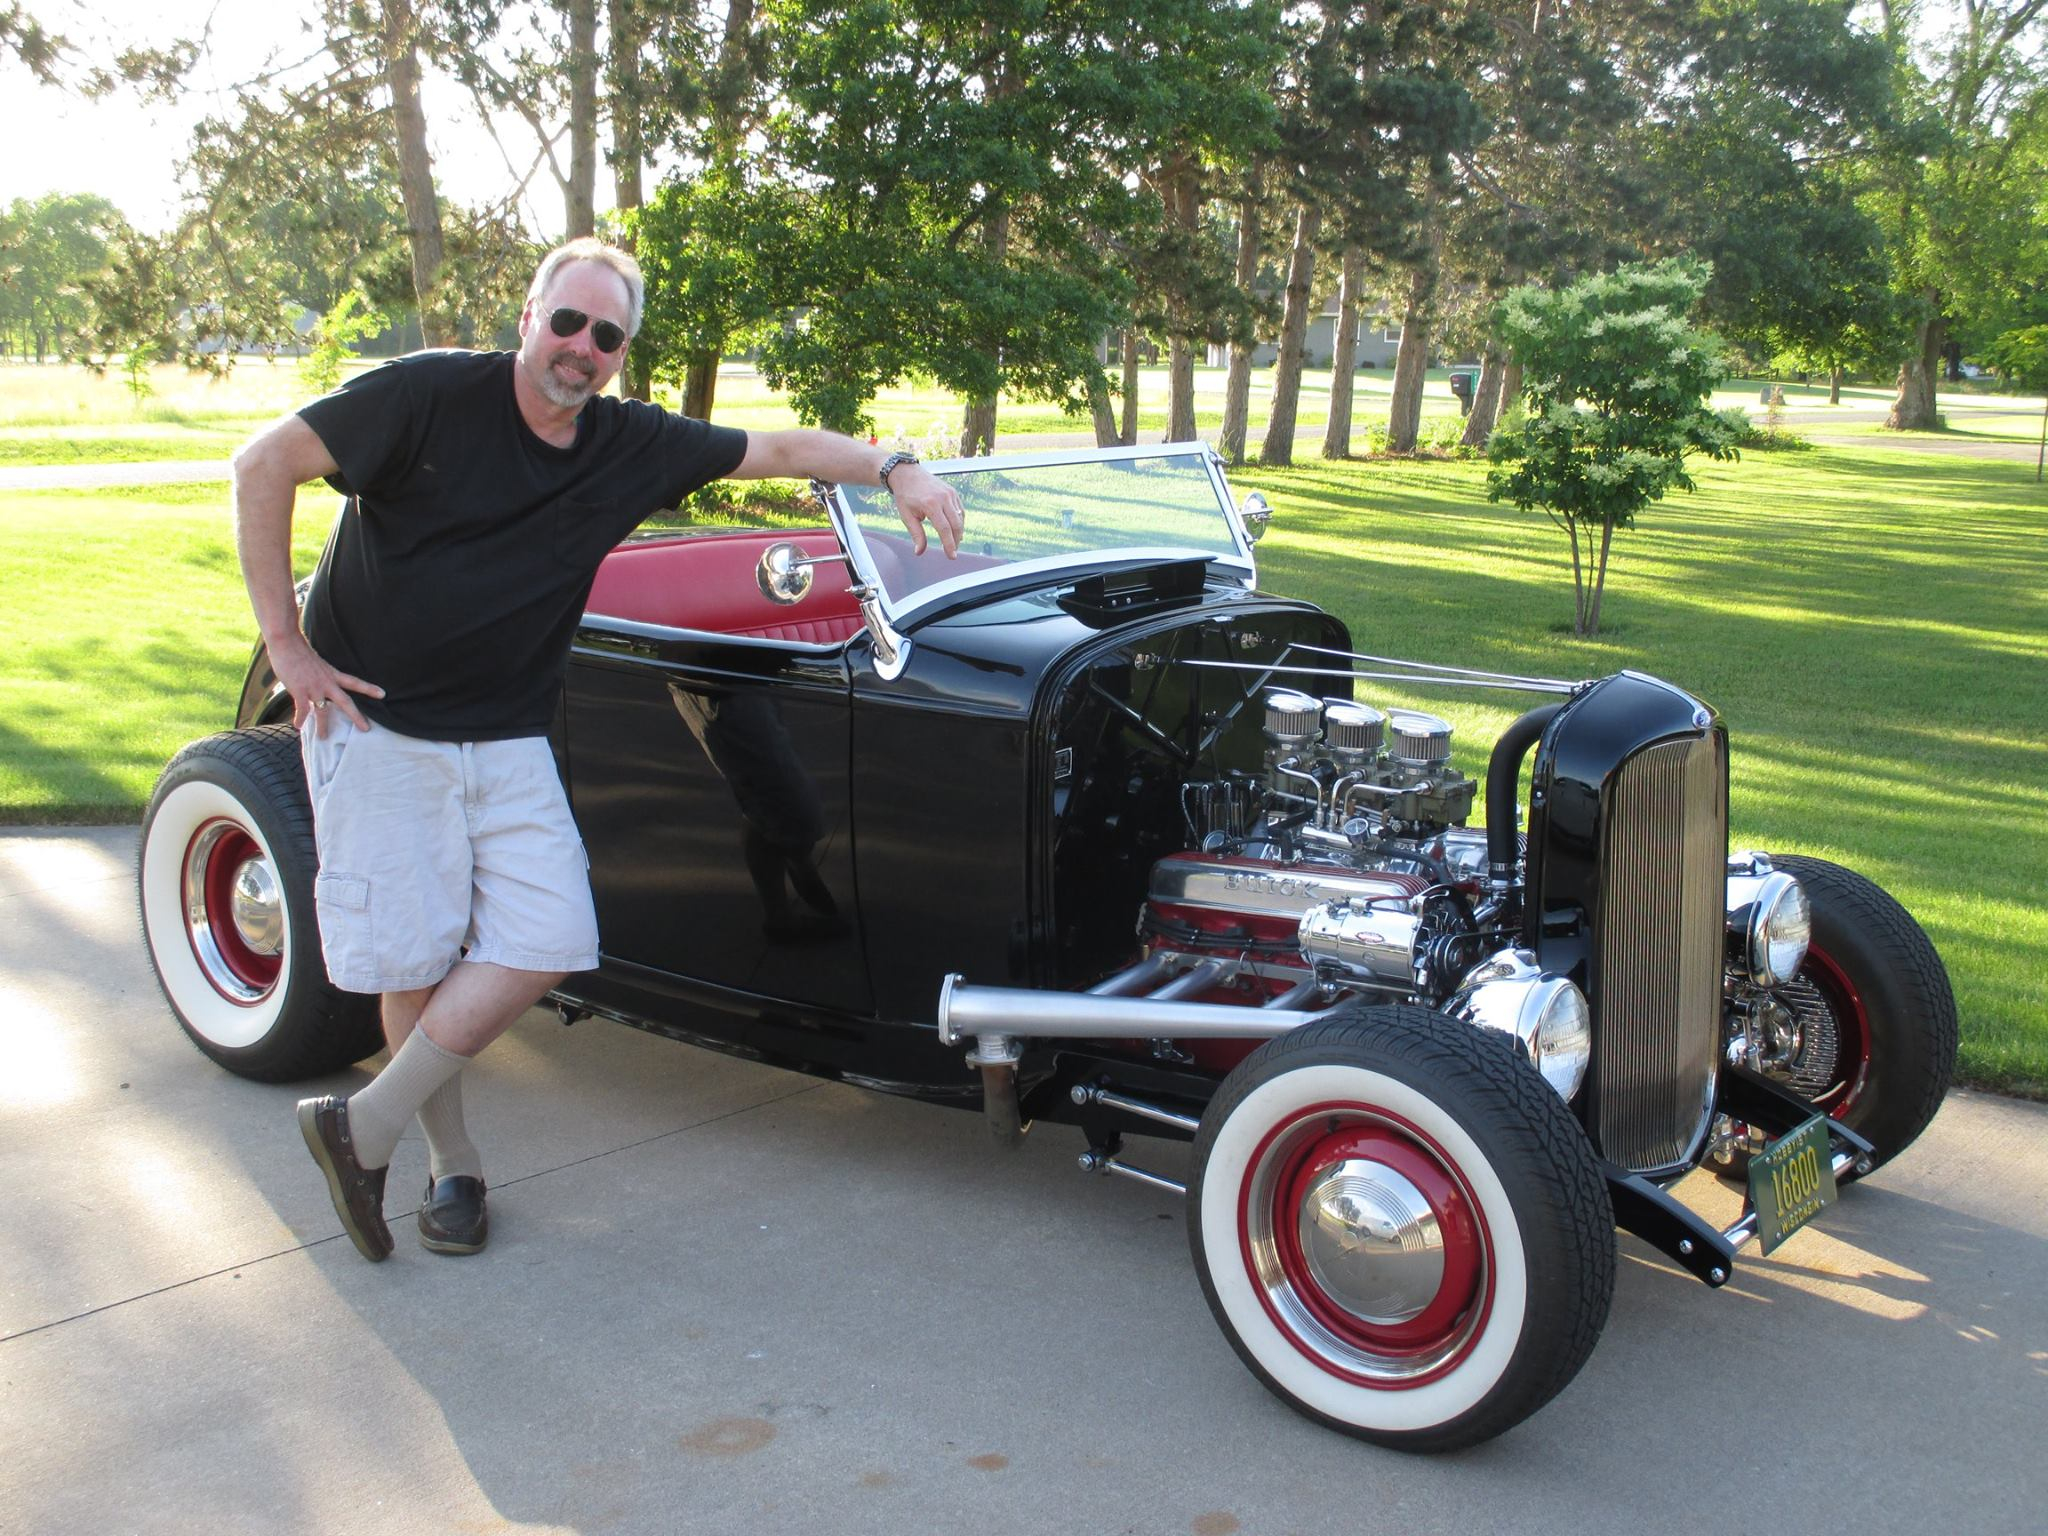 A proud Scott standing next to his Nailhead powered Hot Rod